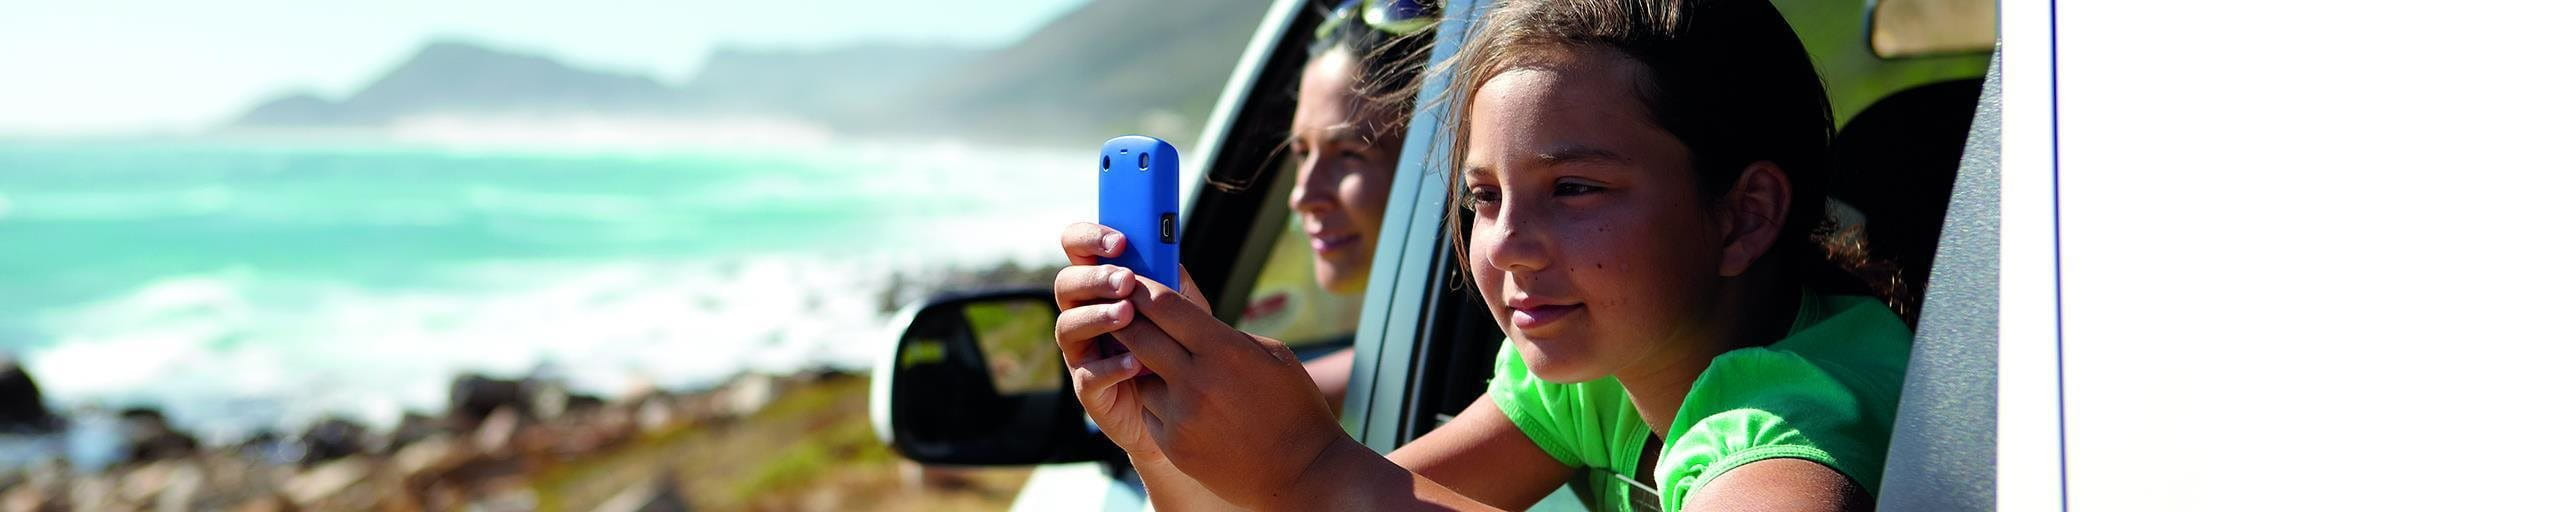 Child with cell phone in the car